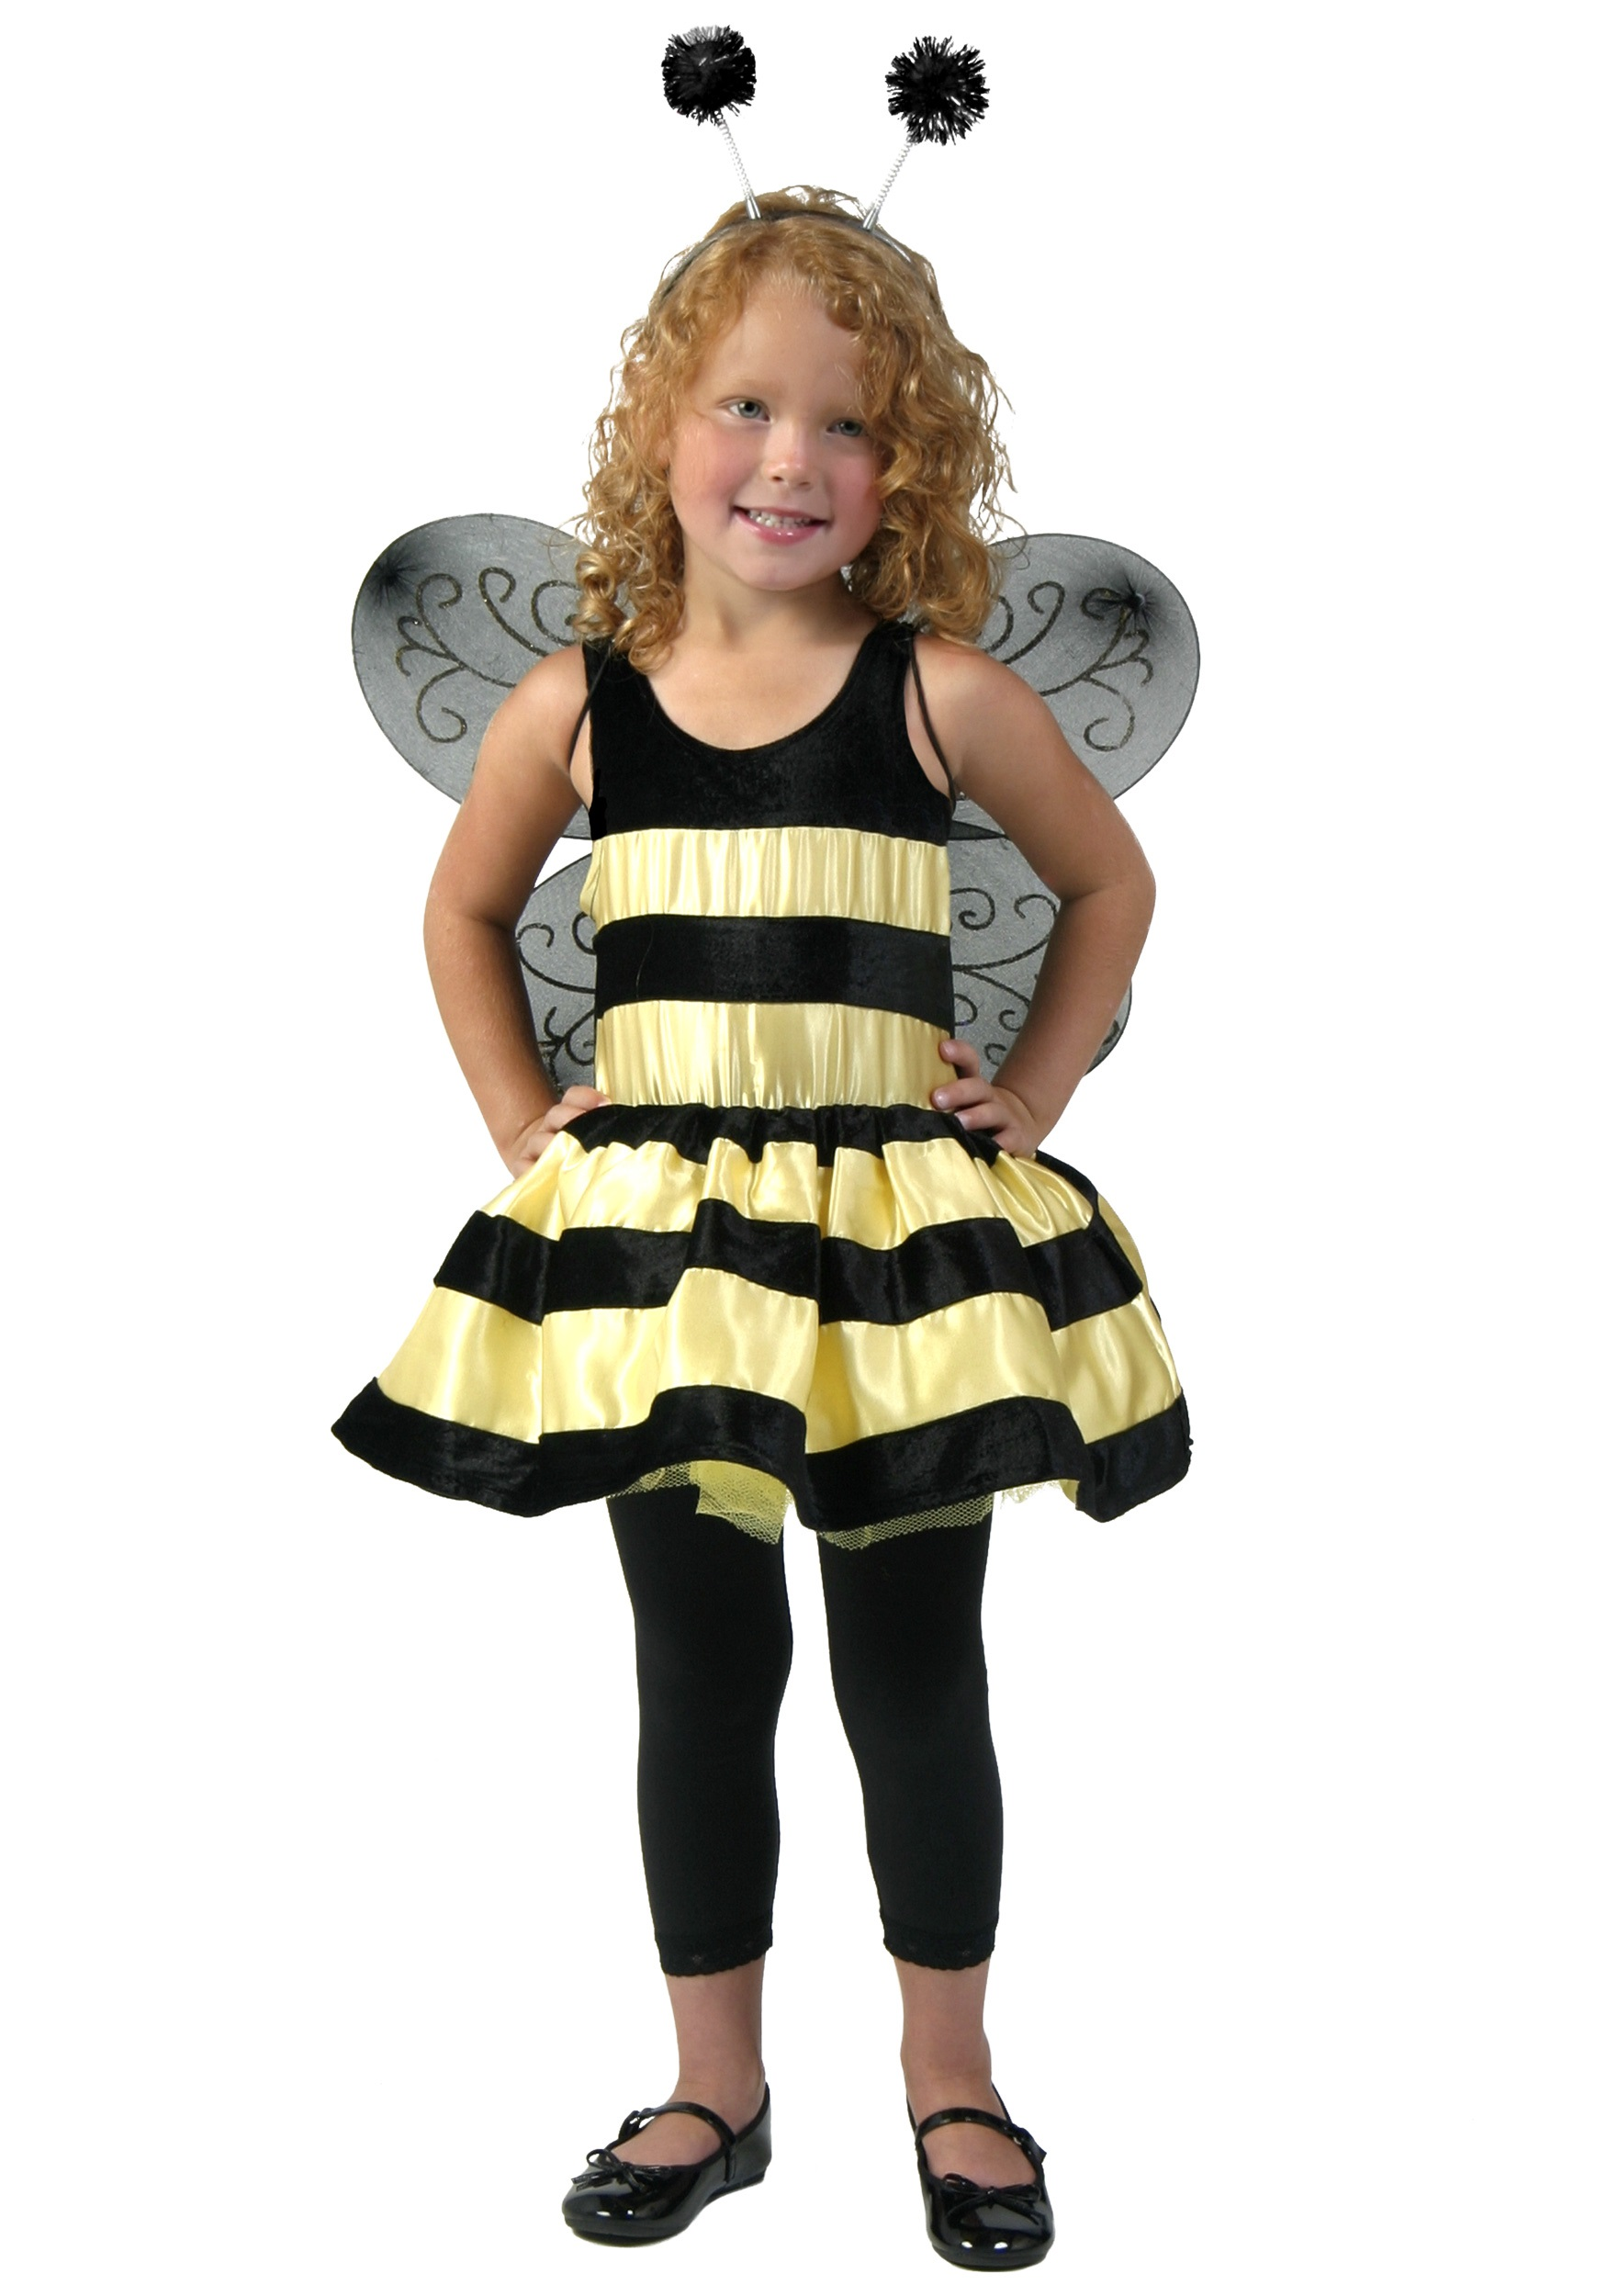 Toddler Tutu Bumble Bee Costume  sc 1 st  Halloween Costumes & Toddler Tutu Bumble Bee Costume - Halloween Costumes